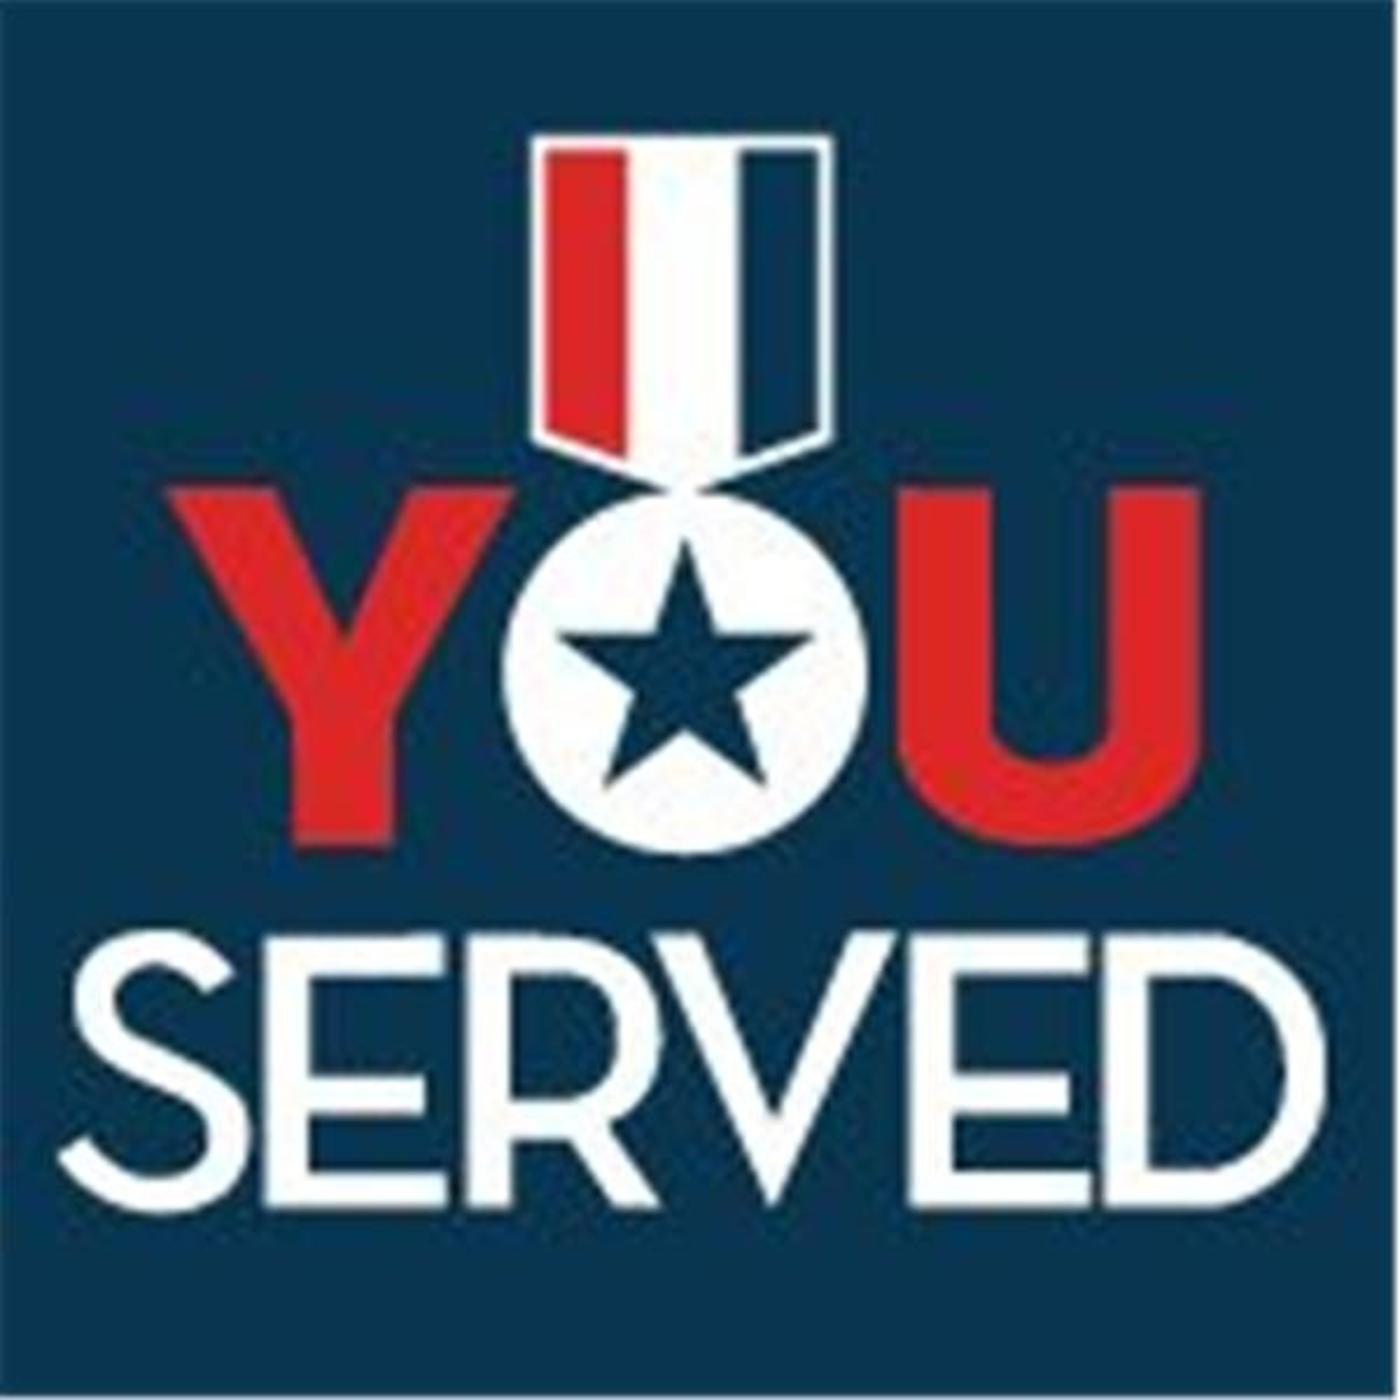 You Served - Military Blog and Podcast